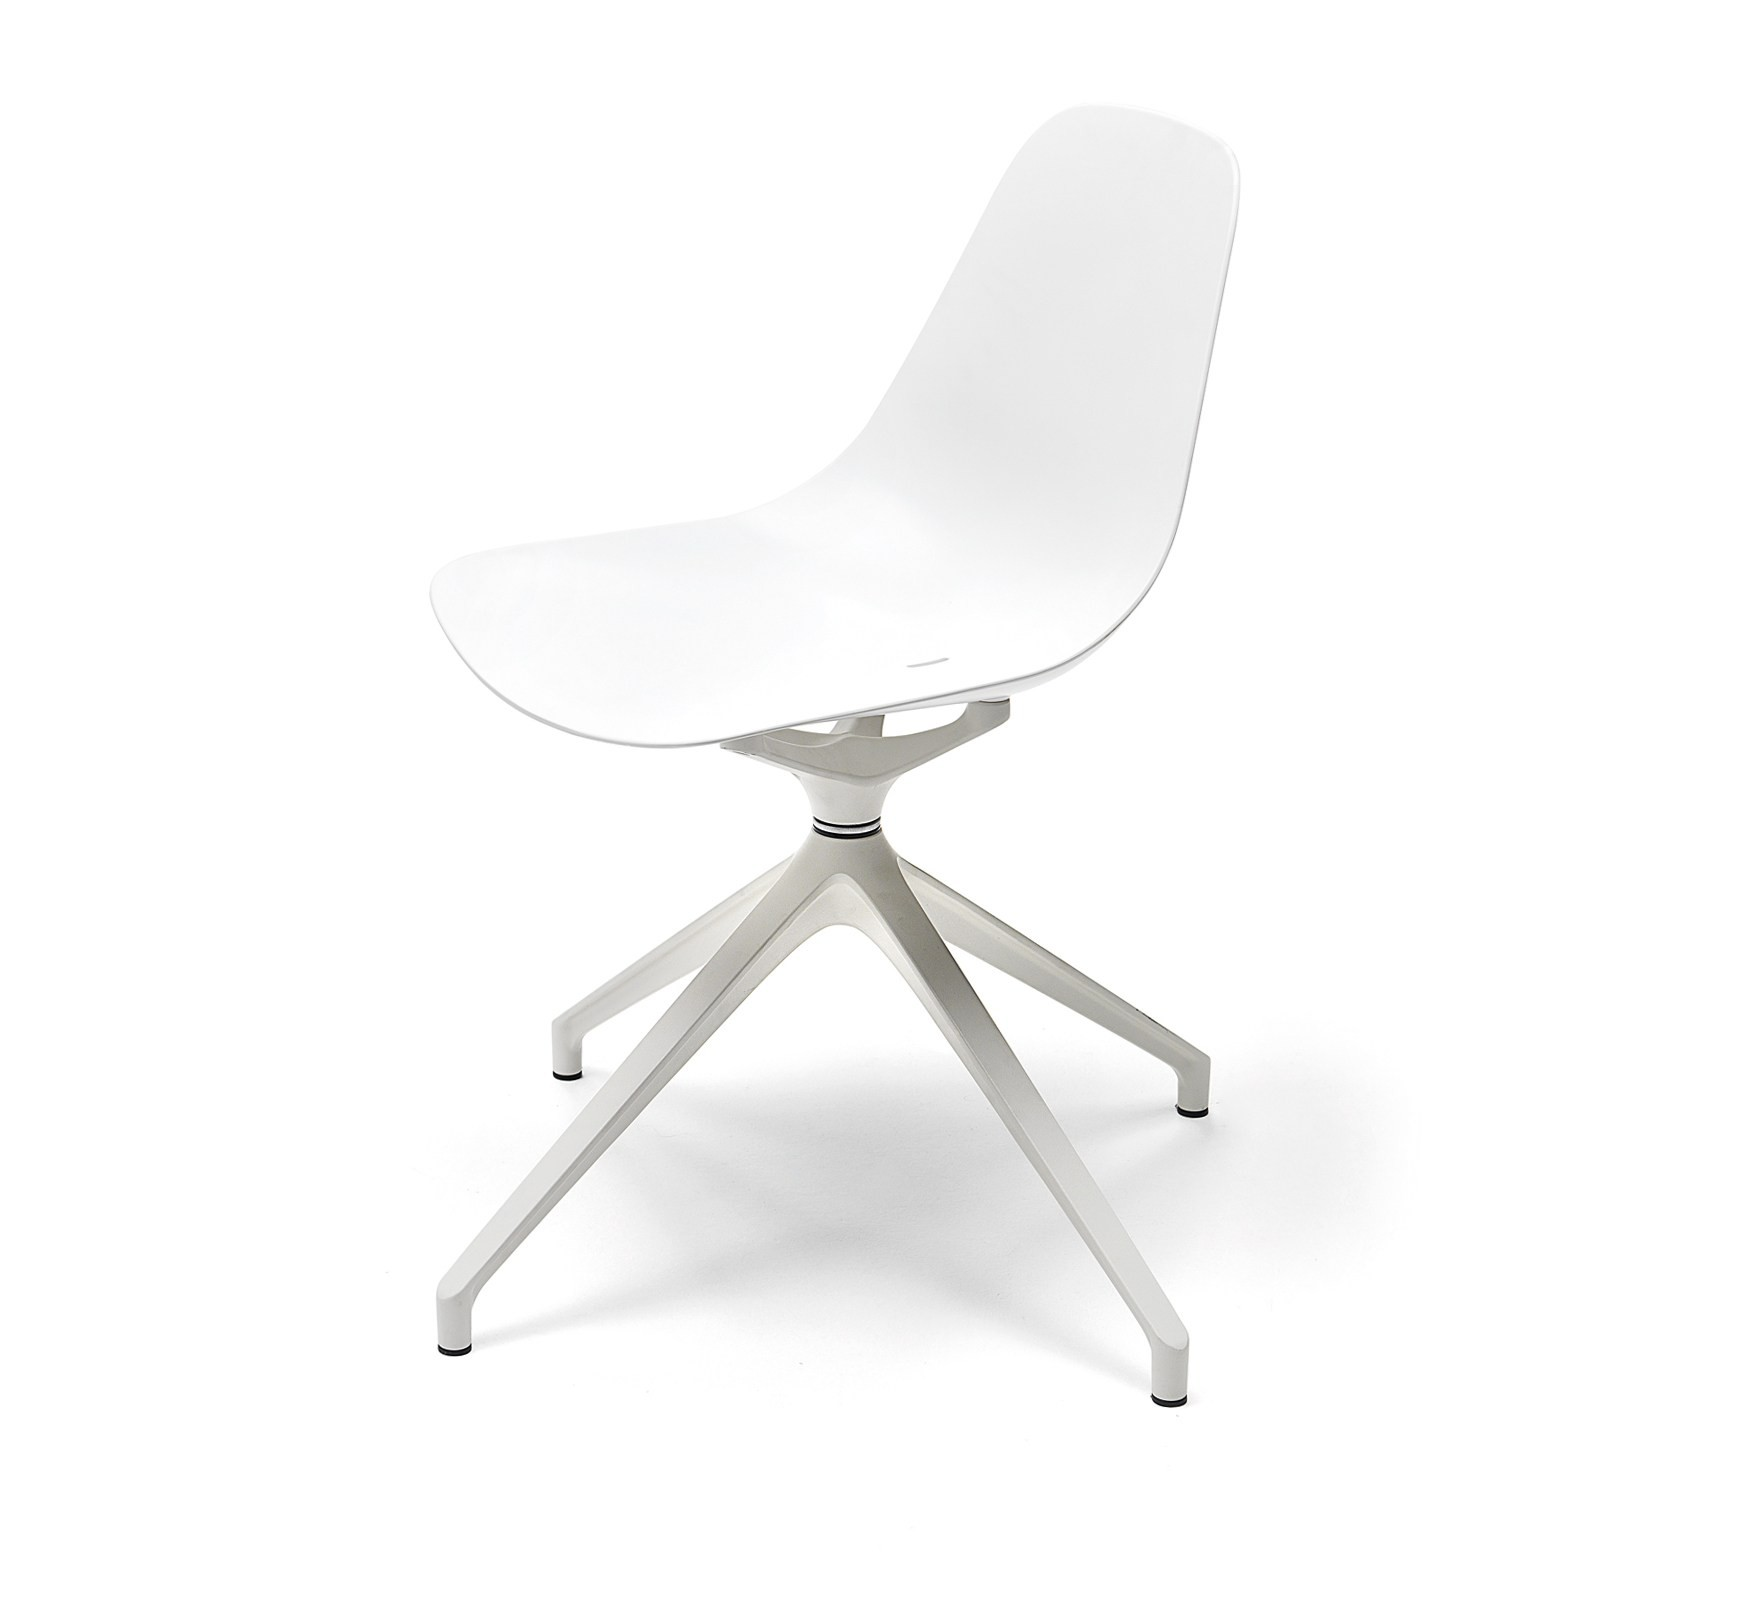 revolving chair other name folding frame mammamia desk